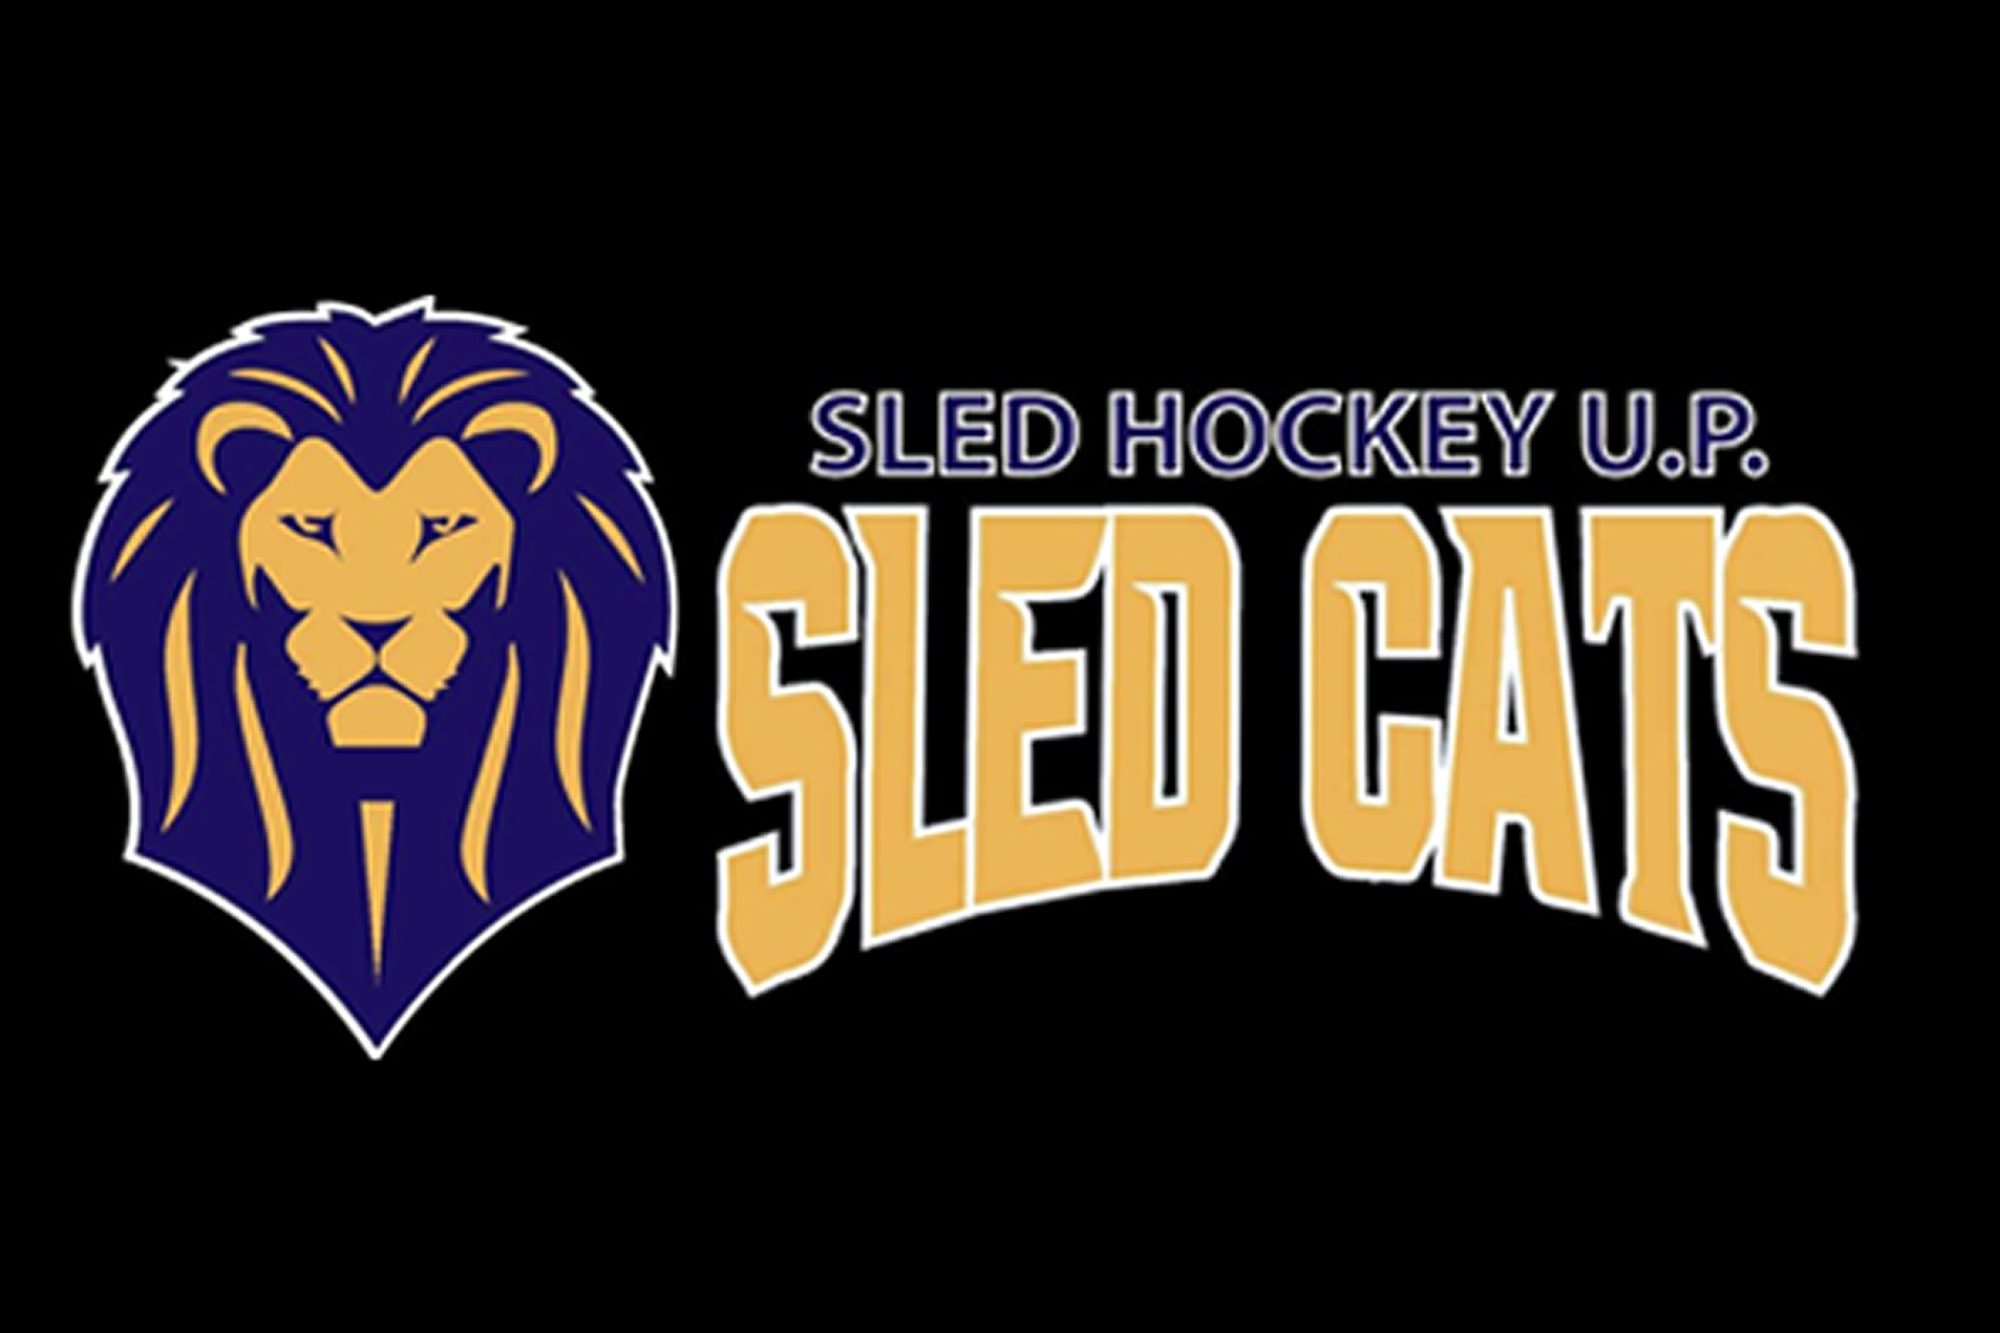 Sled Hockey Upper Peninsula Sled Cats